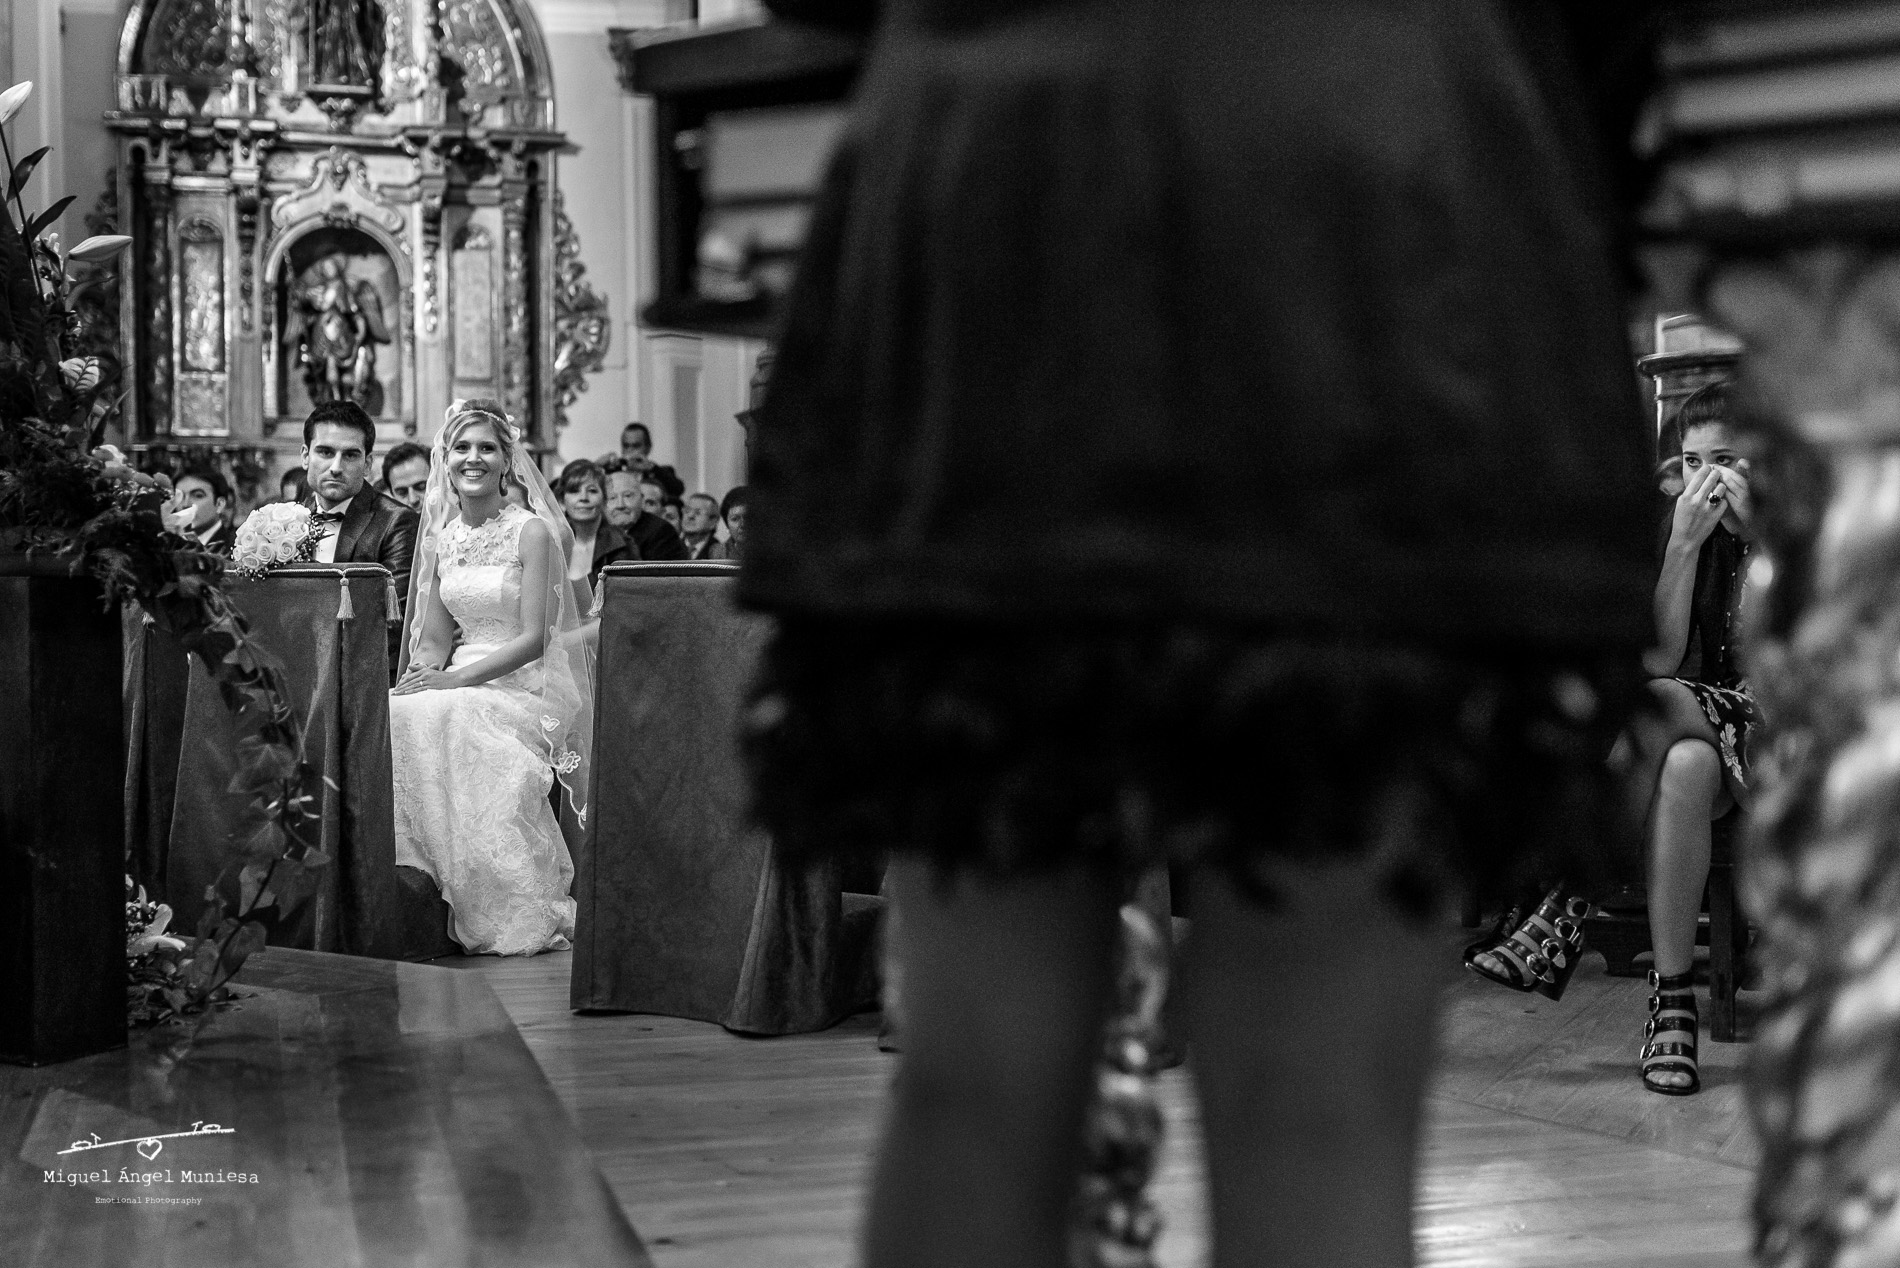 miguel angel muniesa, boda, fotografo de boda, boda zaragoza, wedding photographer, miguel angel muniesa emotional photography, destination wedding_23